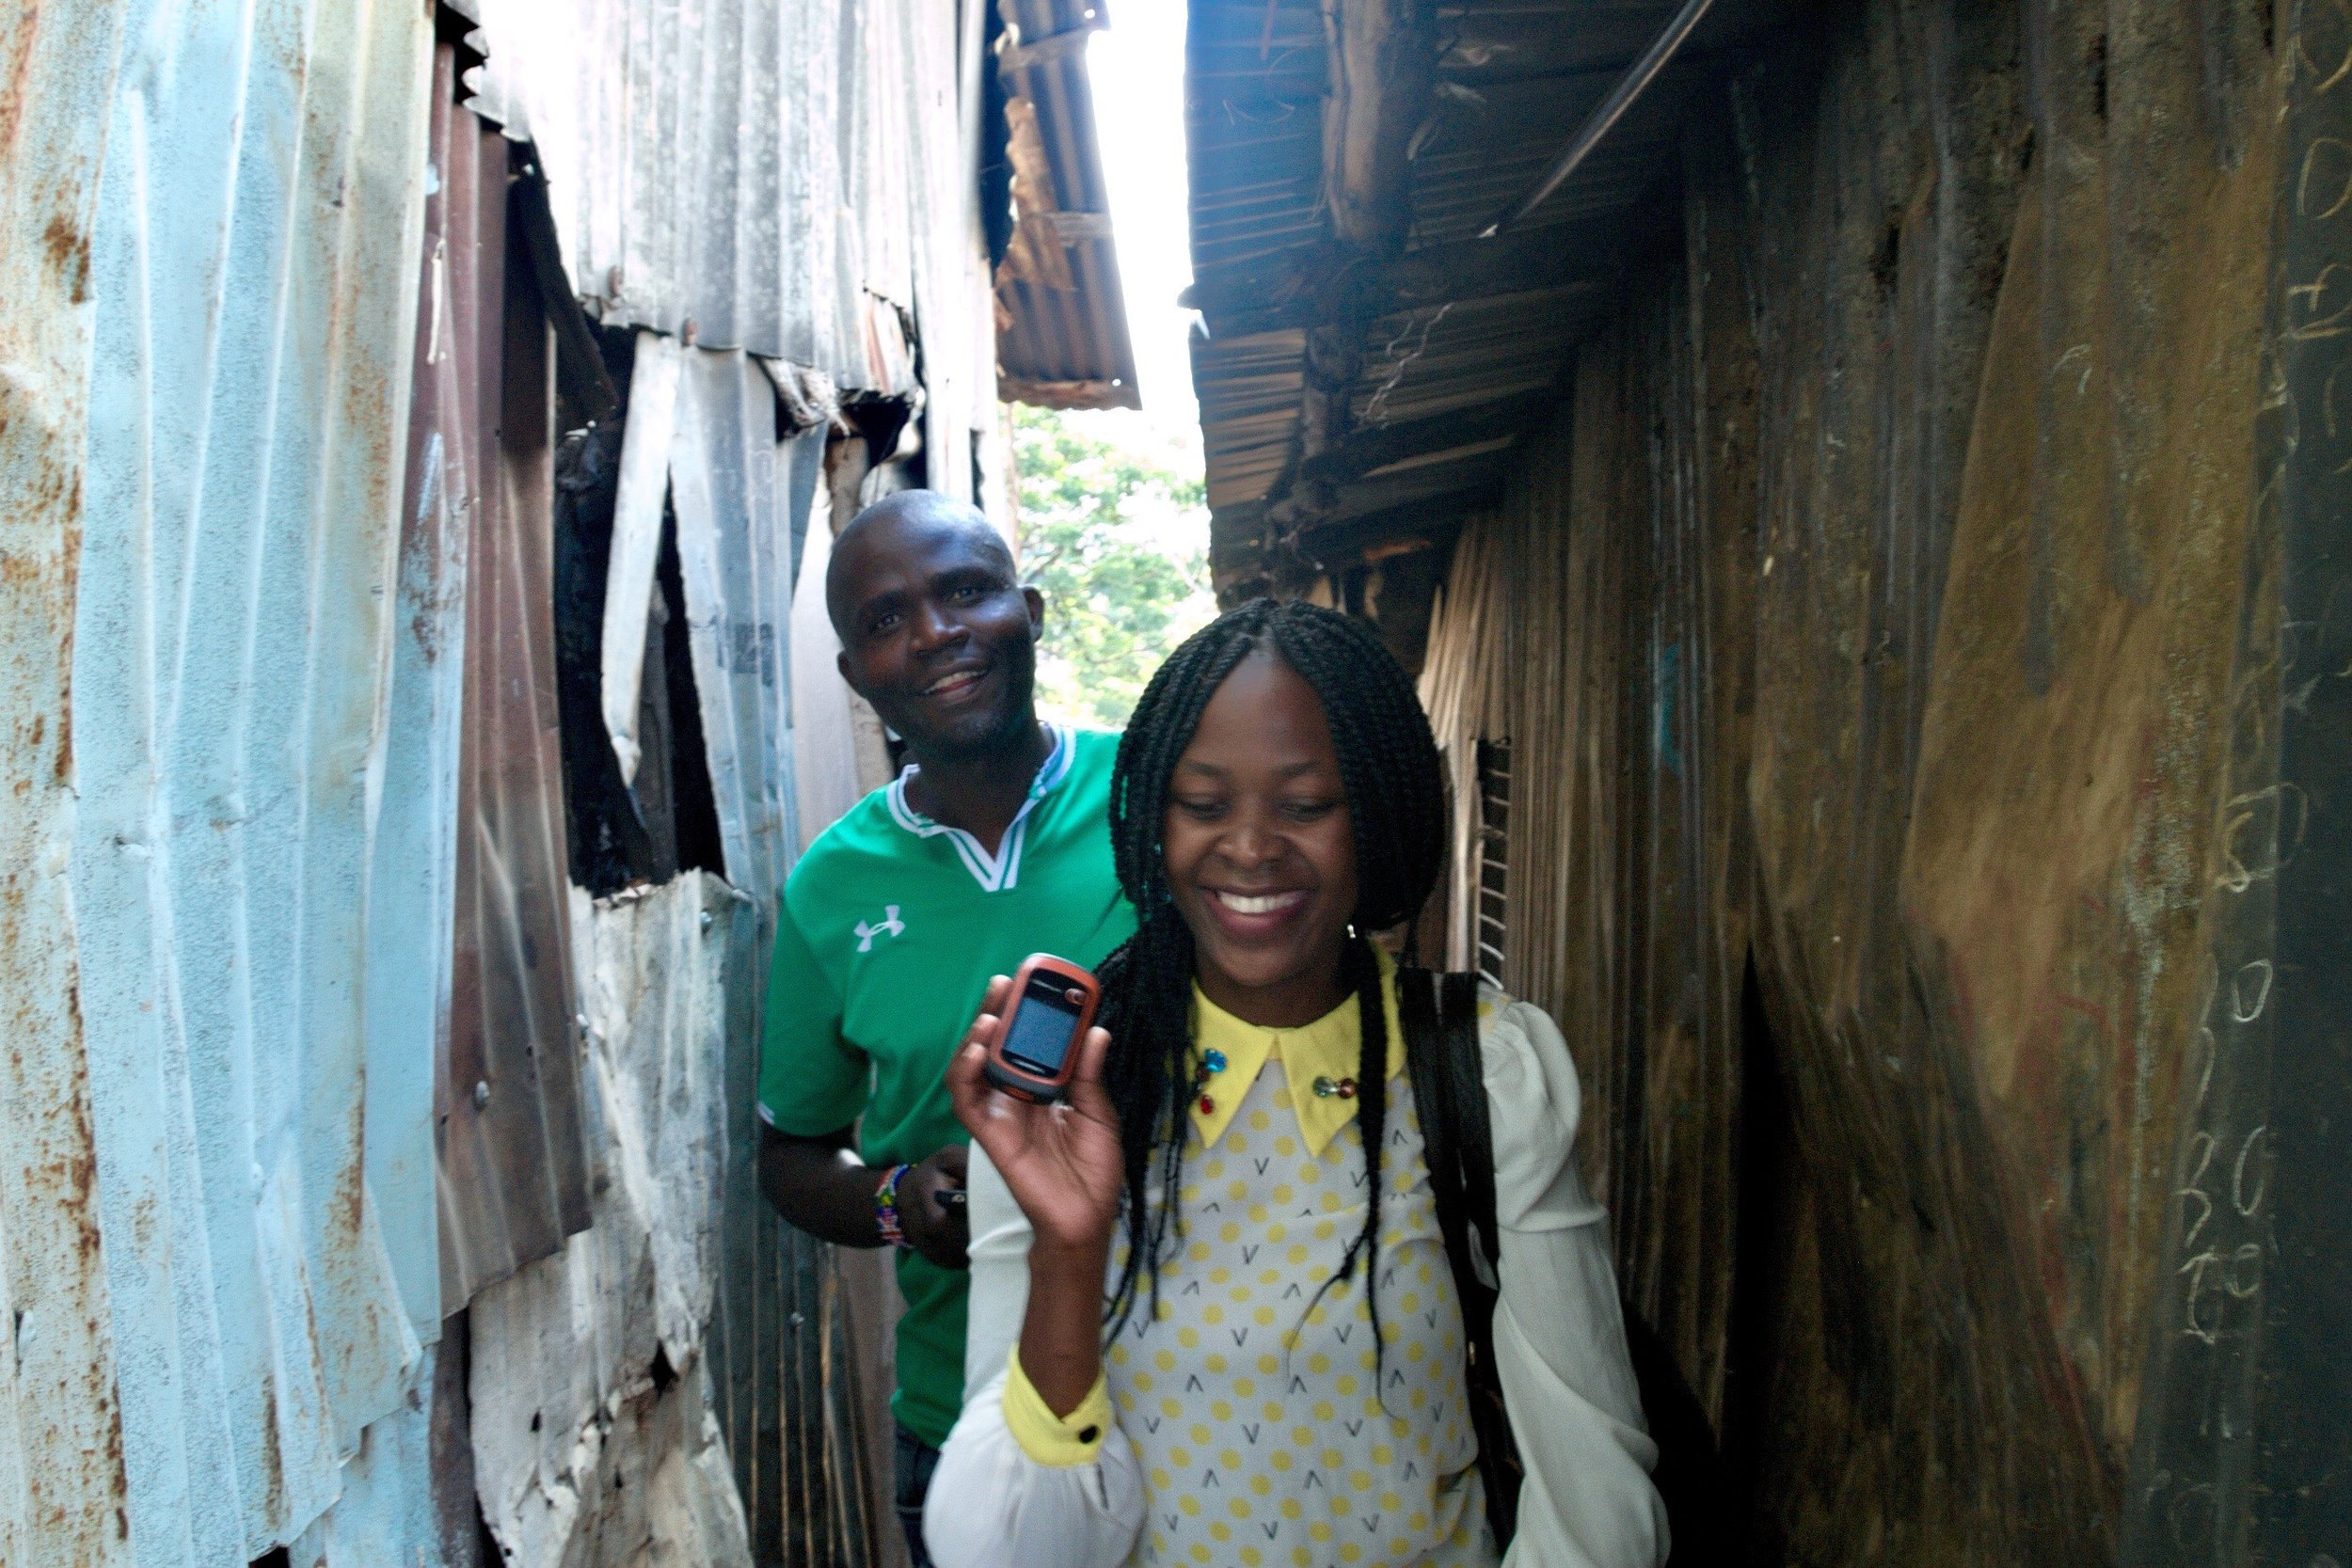 Two young people from Mathare in Nairobi, Kenya, who are mapping sanitation facilities in their community using a handheld GPS device